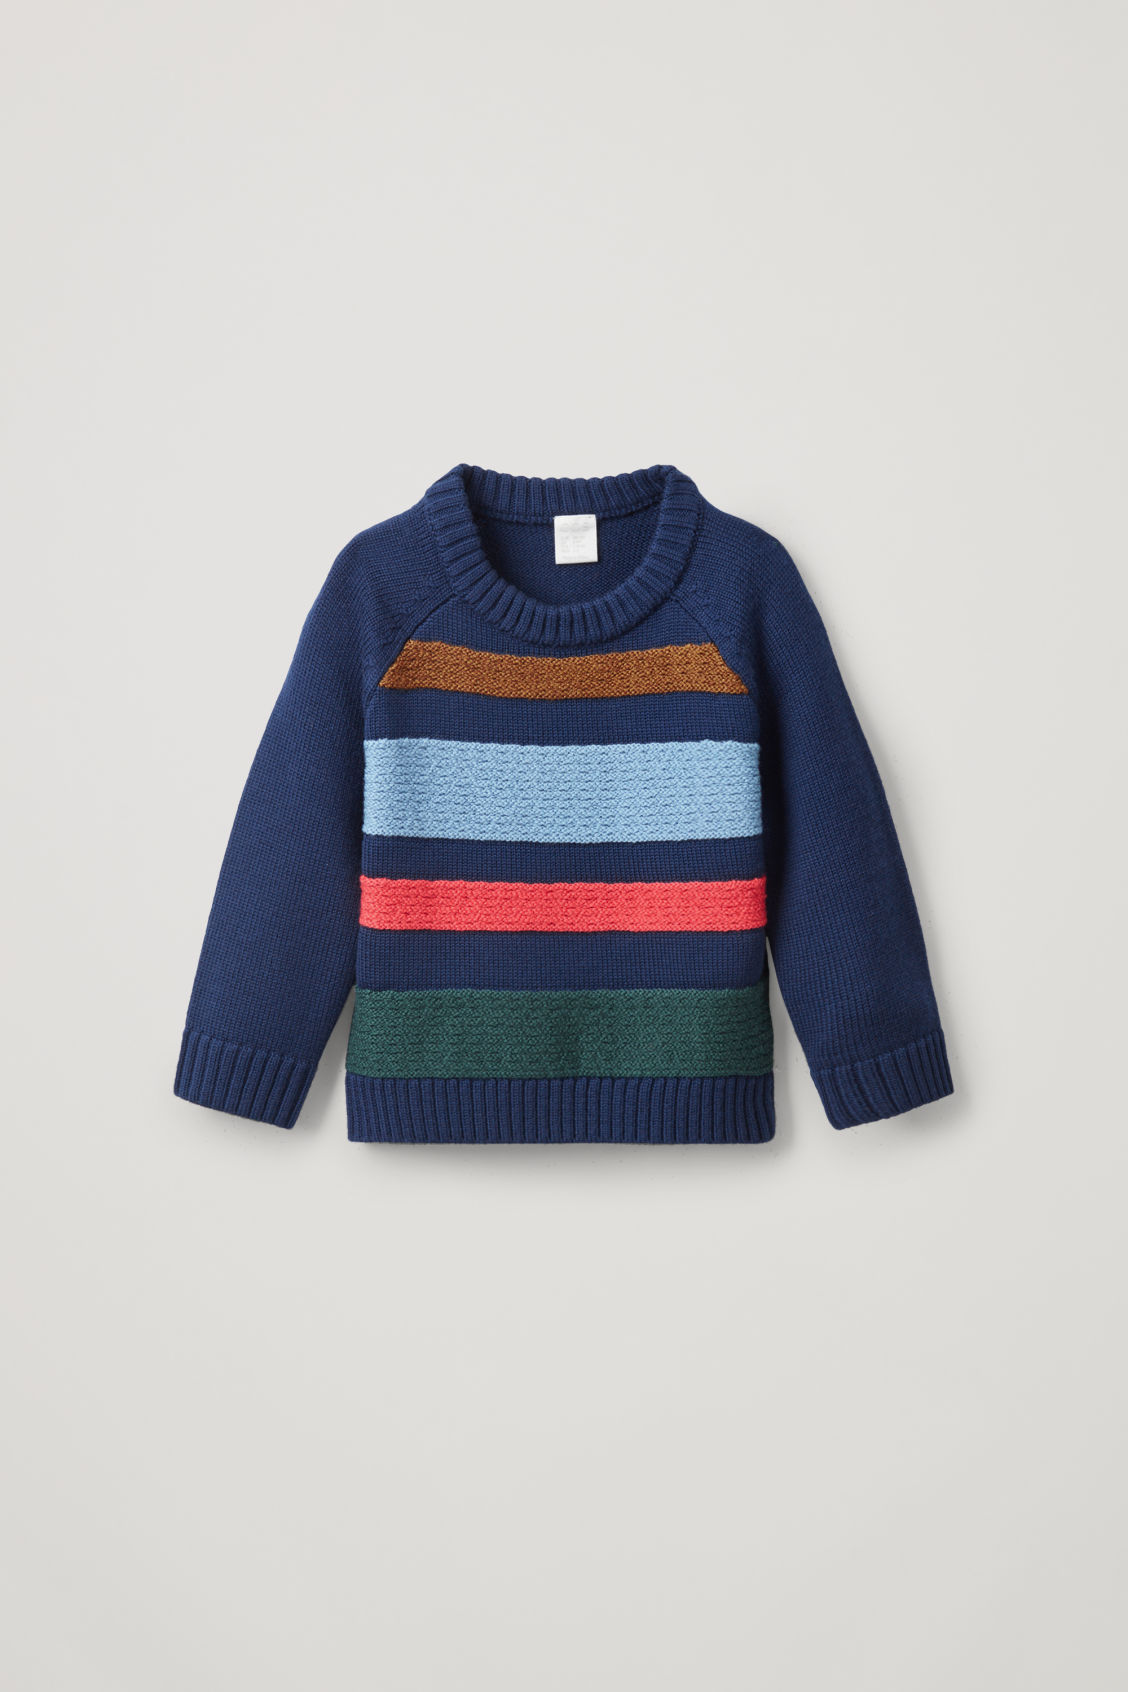 Cos Kids' Merino Jumper With Textured Stripes In Green